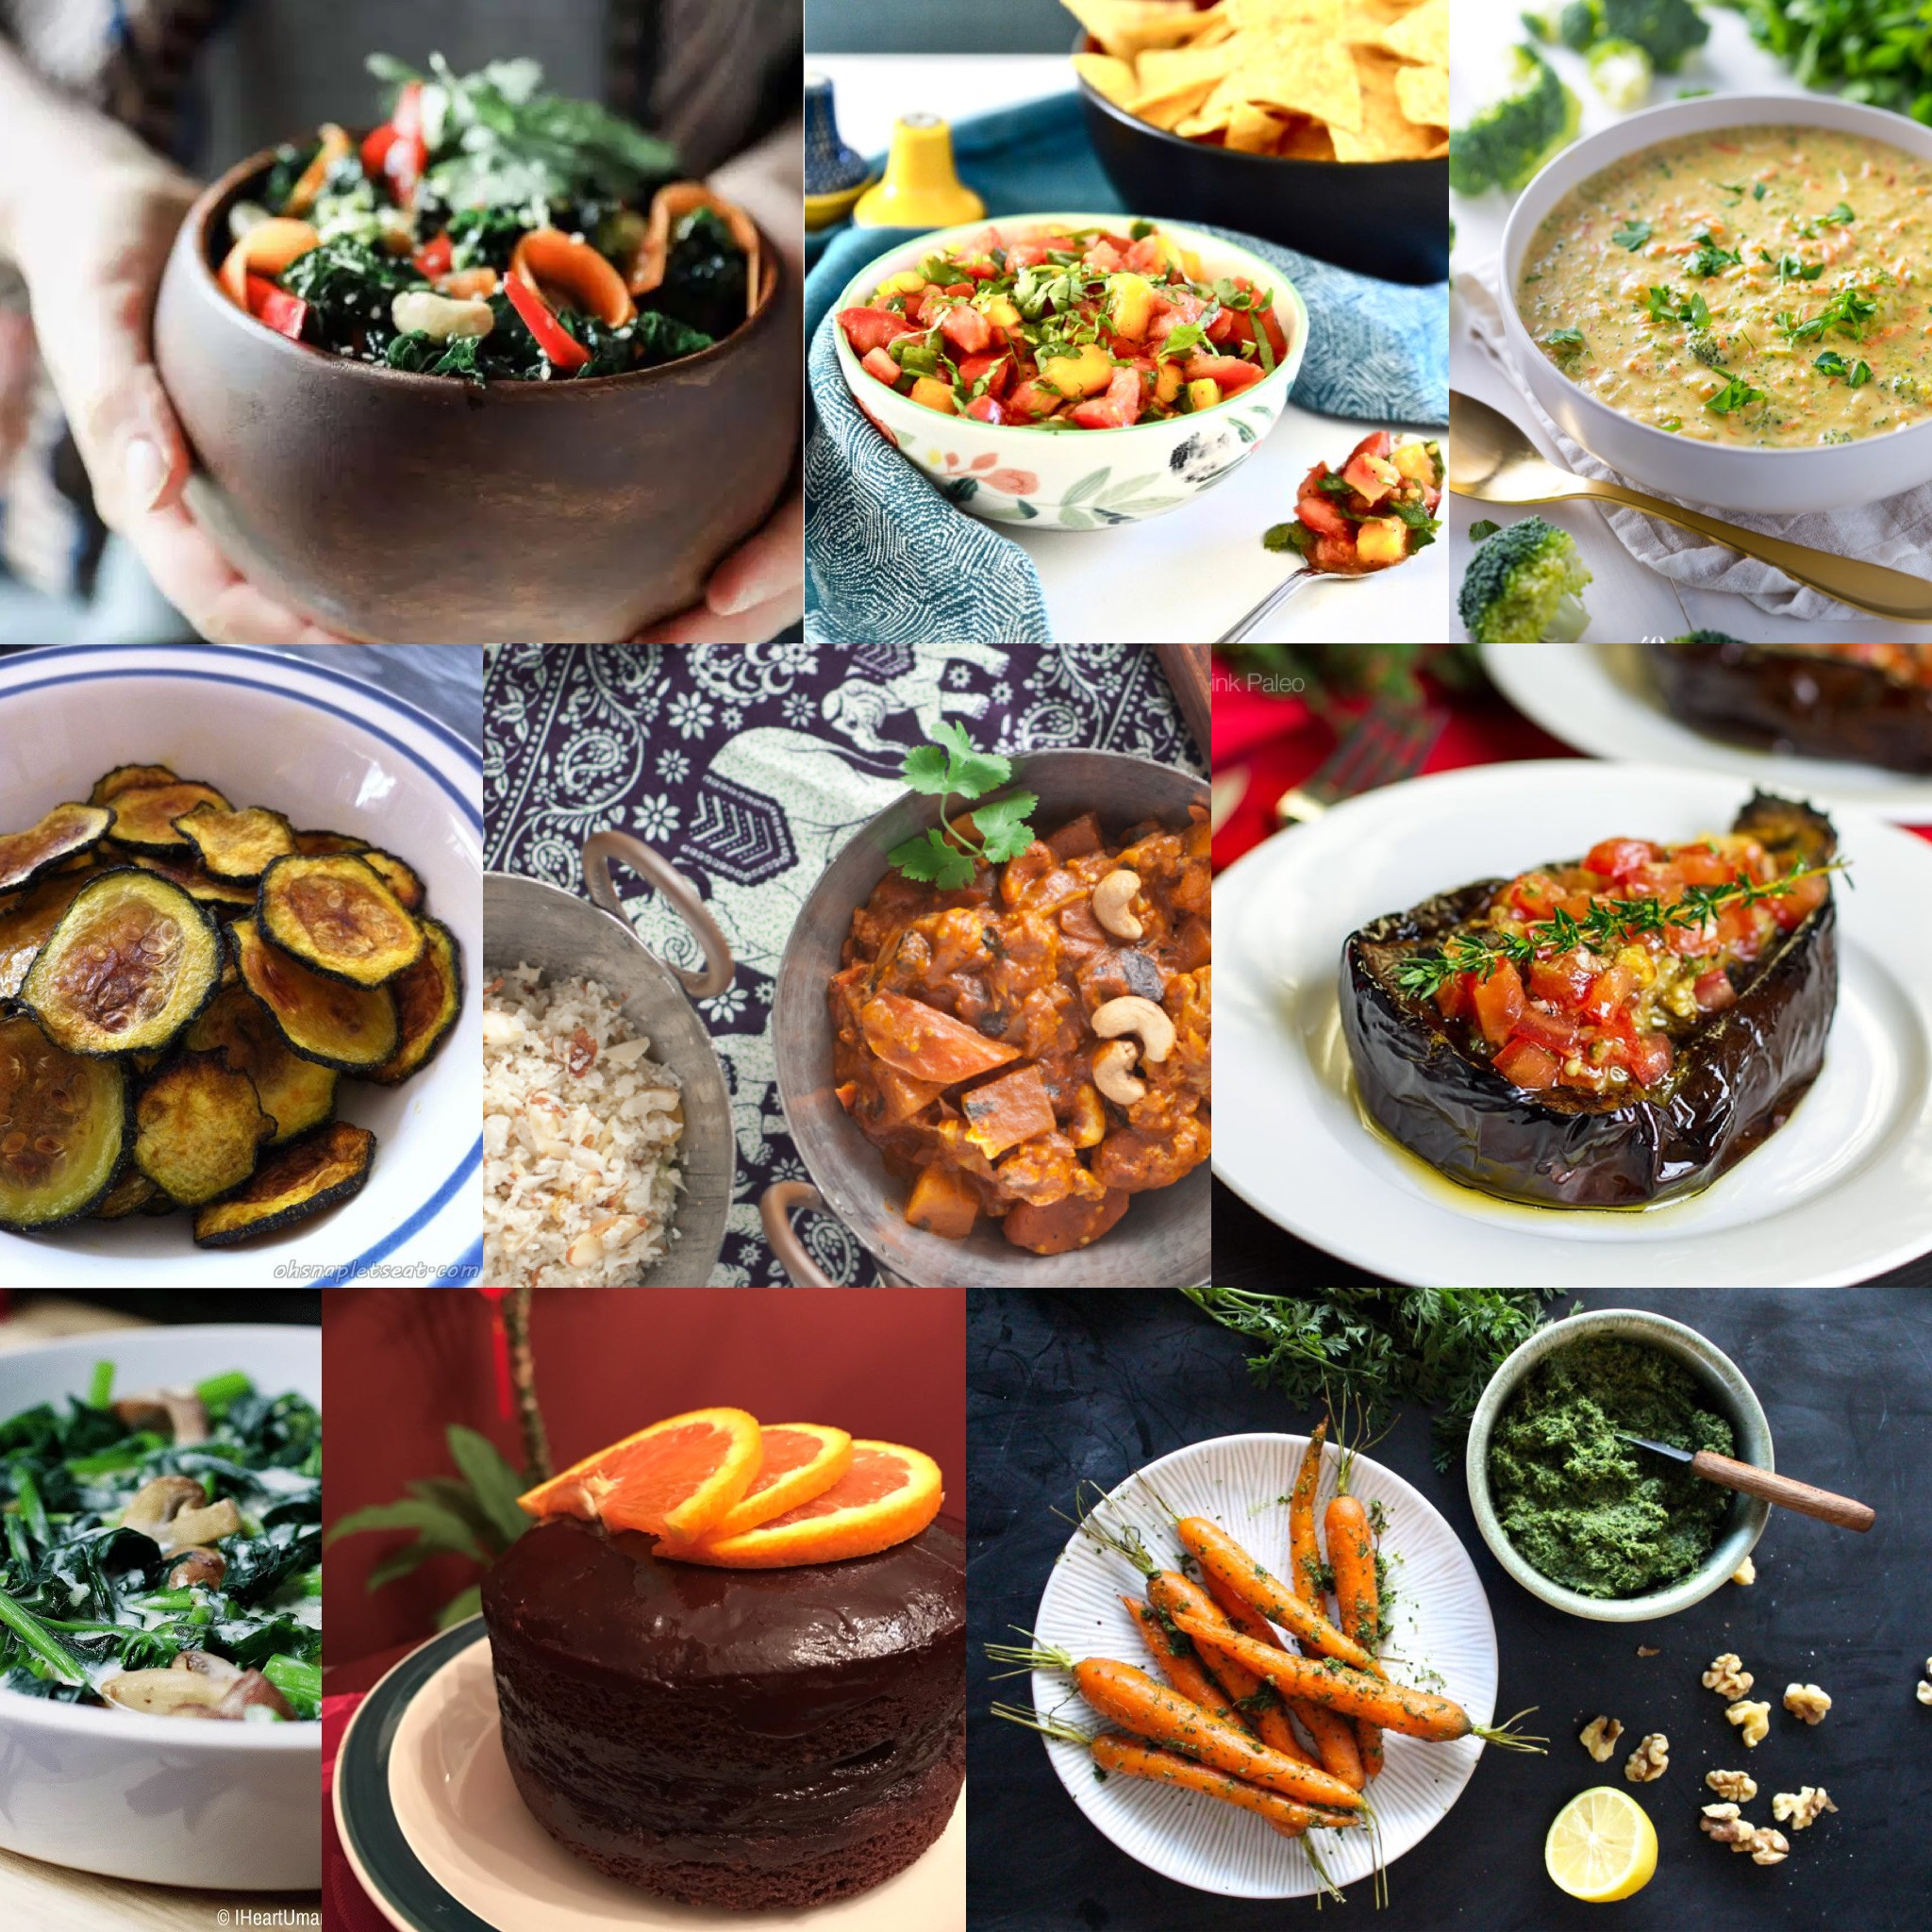 Vegetarian Paleo Recipes  The Ultimate Paleo Ve arian Recipes Roundup Oh Snap